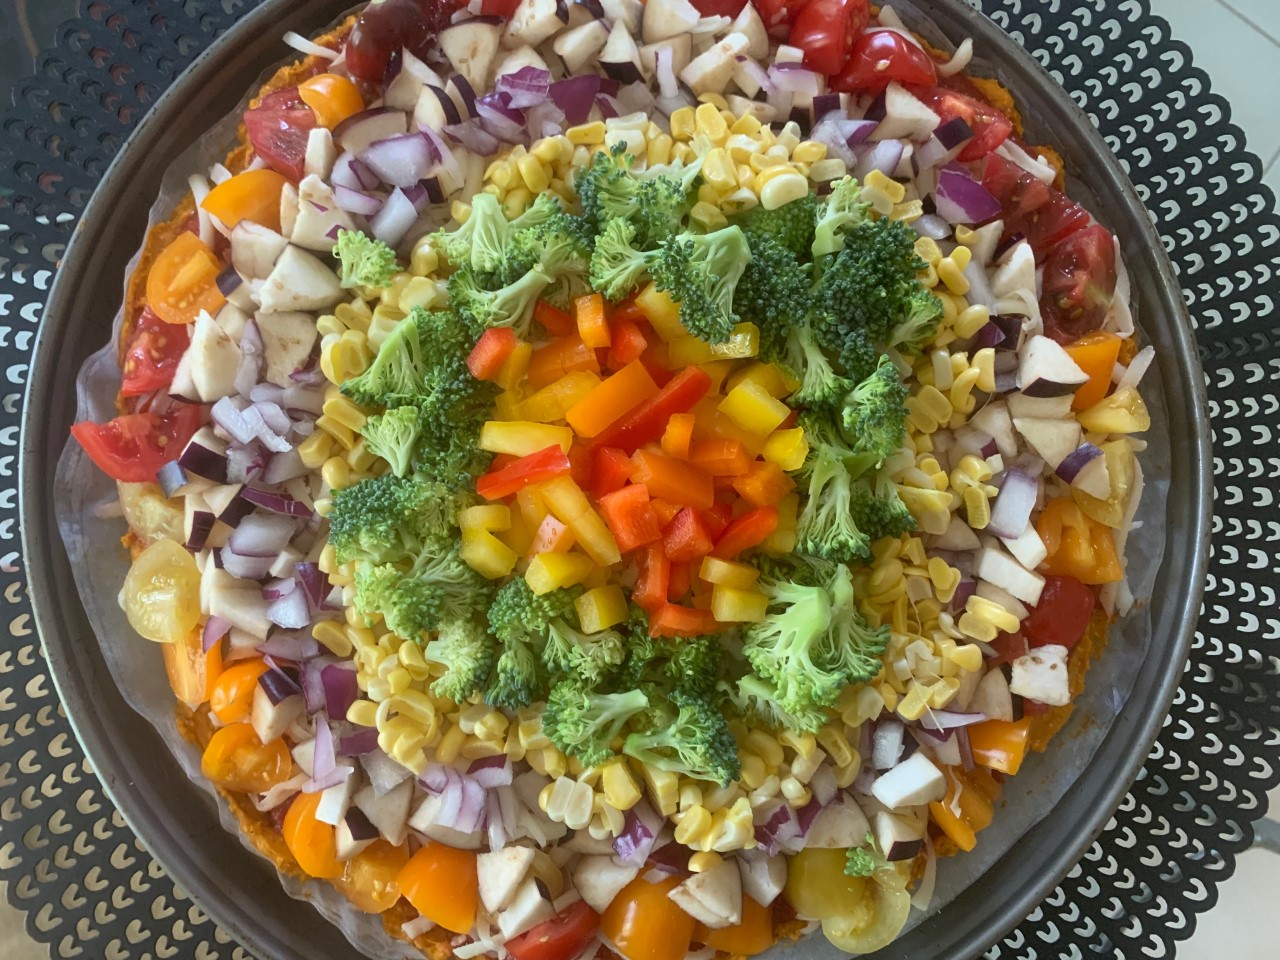 Rainbow Pizza with a sweet potato crust, bell peppers, corn, butternut squash, eggplant, and broccoli